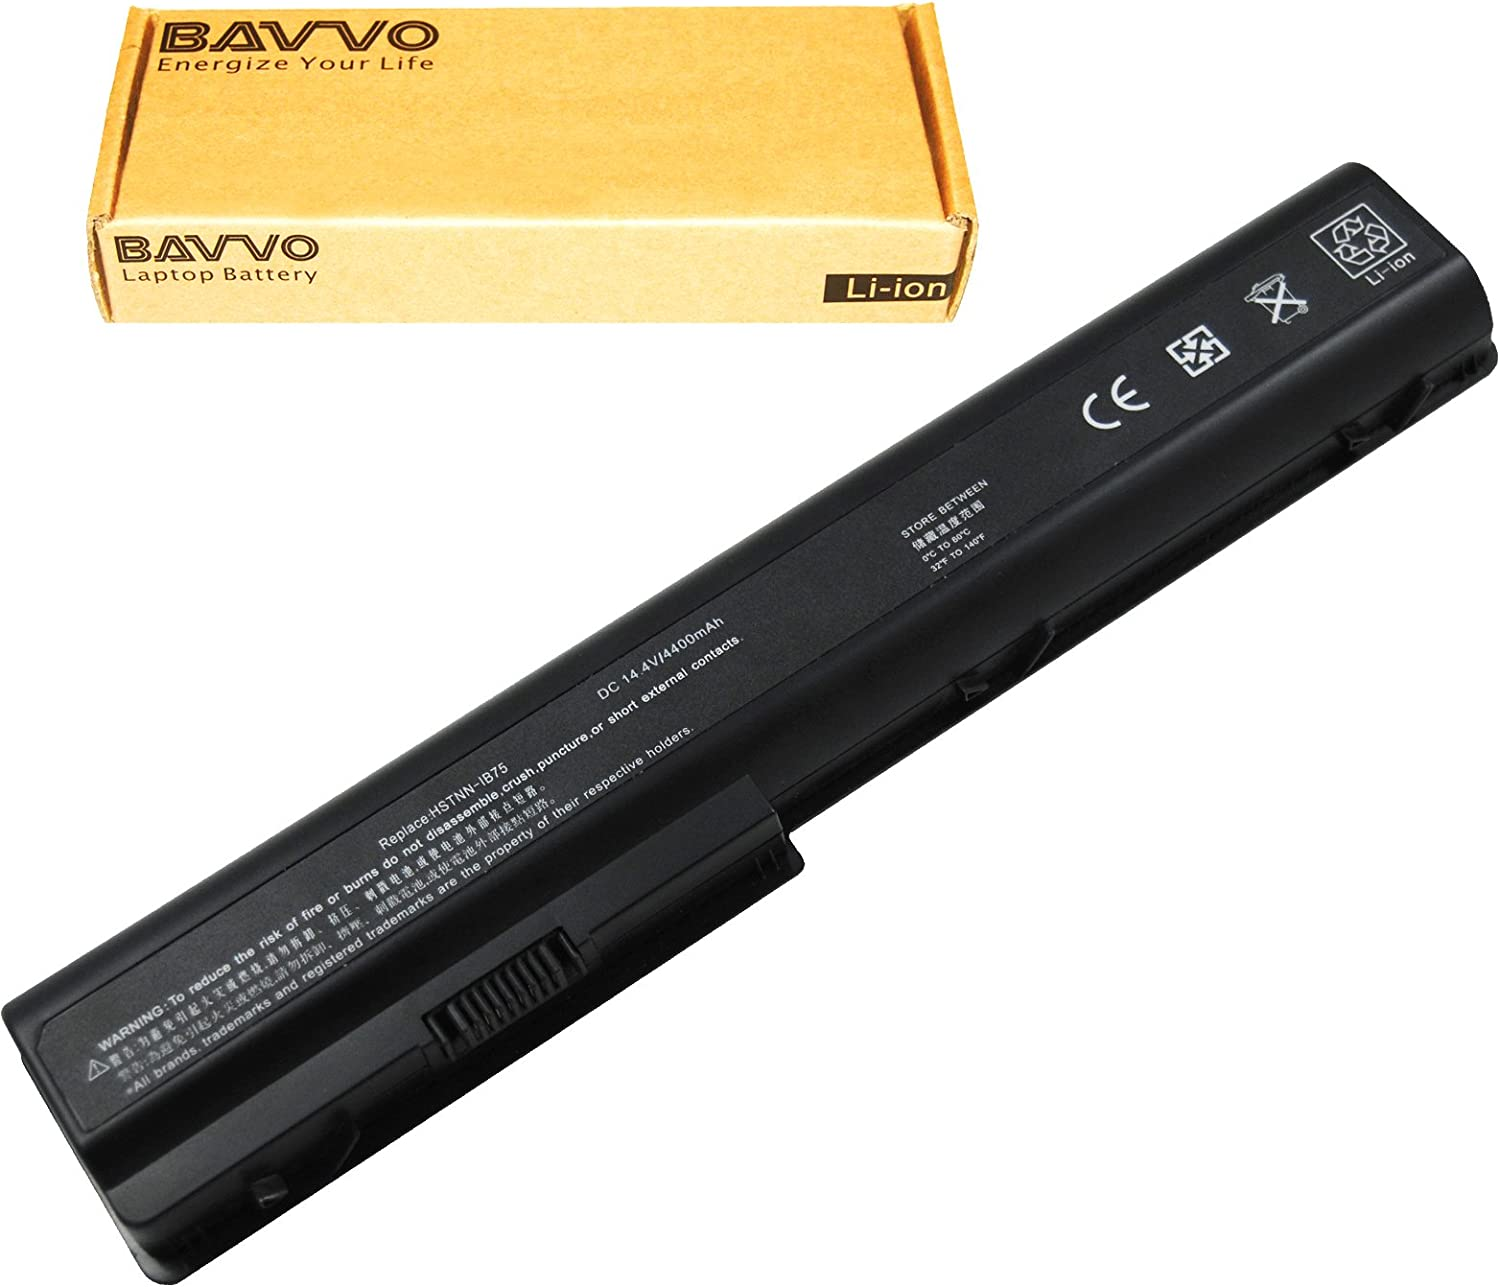 Bavvo 8-Cell Battery Compatible with Pavilion DV7-3170CA,DV7-3171NR,DV7-3173CA,DV7-3173NR,DV7-3174CA,DV7-3174NR,DV7-3178CA,DV7-3180US,DV7-3183CL,DV7-3183NR,DV7-3186CL,DV7-3187CL,DV7-3188CL,DV8-1093CA